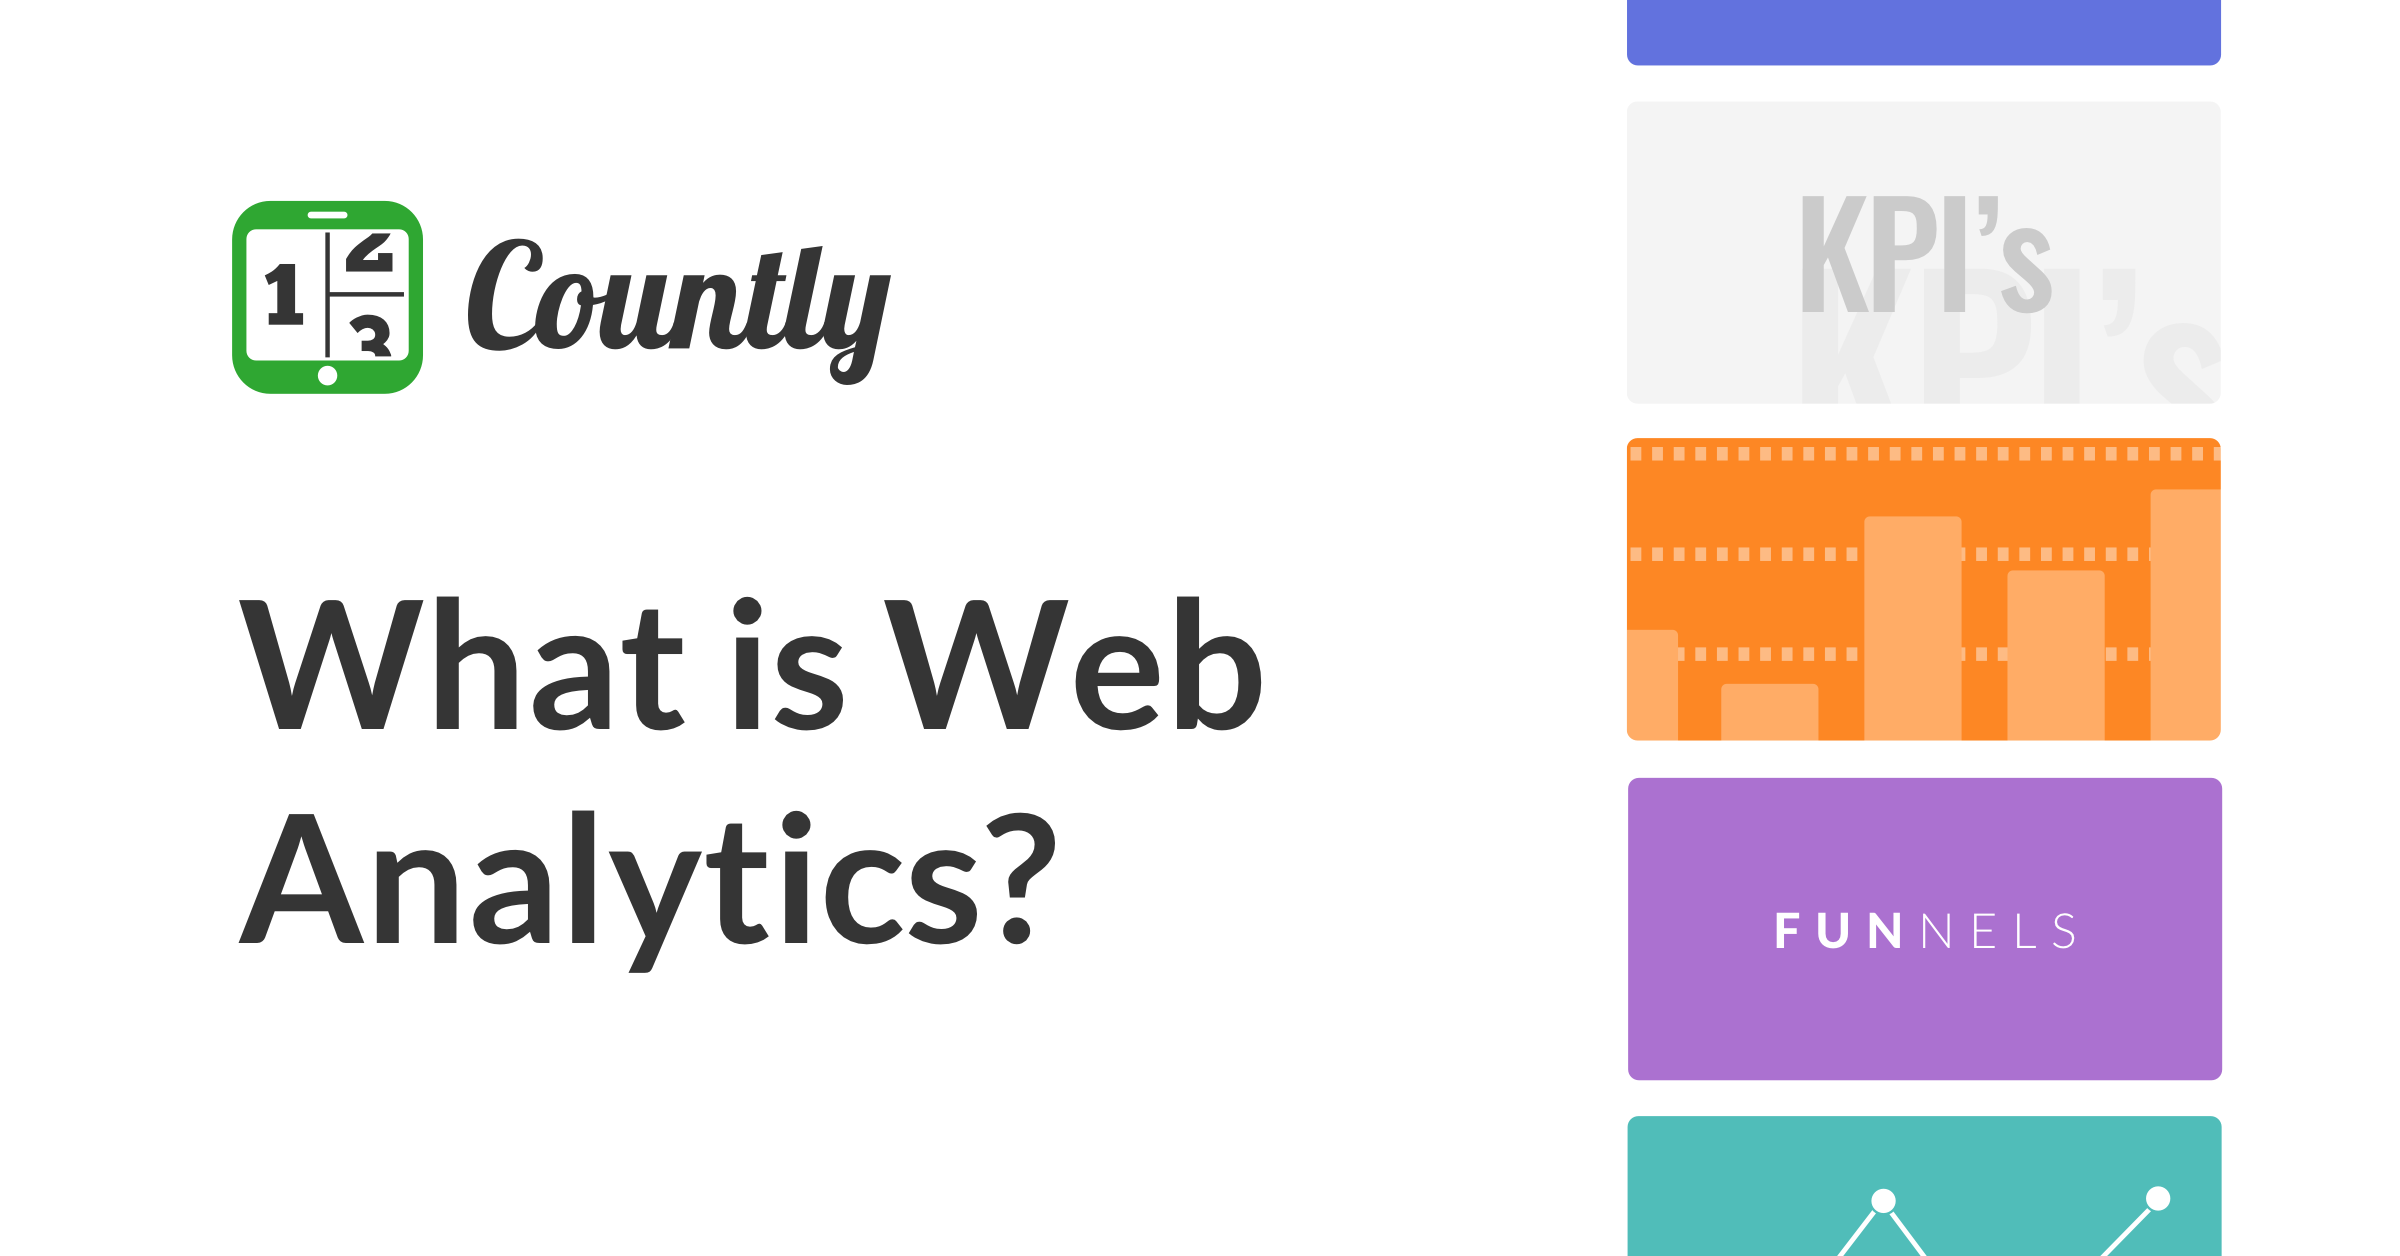 countly what is web analytics